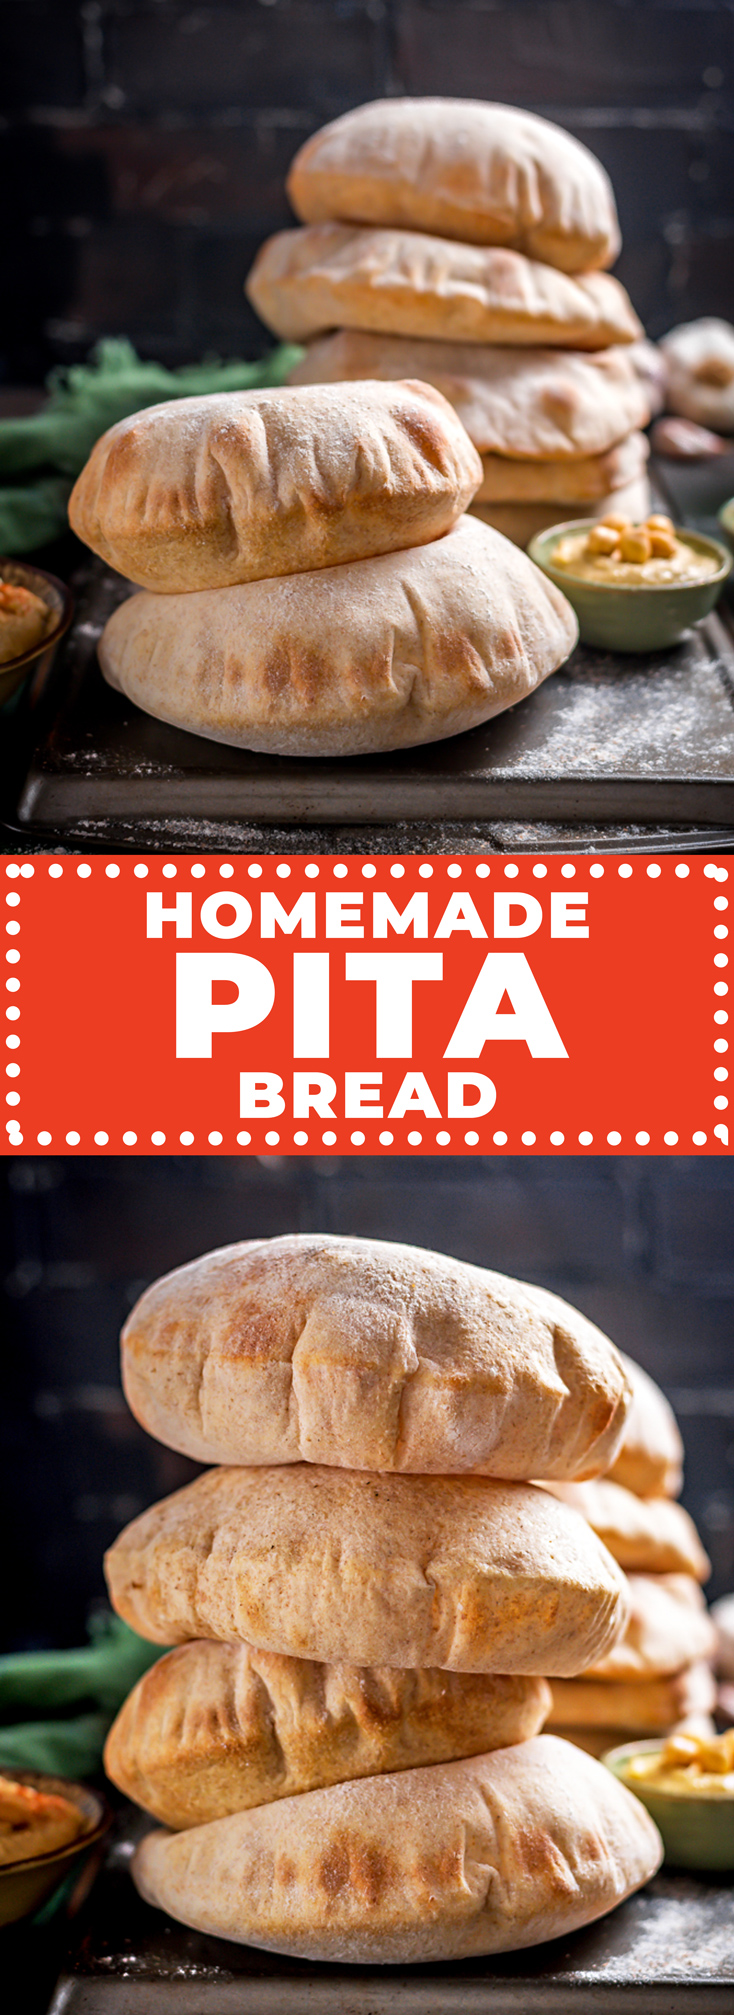 If warm, fluffy, poofed, and perfectly-pocketed pitas are what you're looking for, it doesn't get better than this recipe for Homemade Pita Bread. They're surprisingly simple to make and leagues better than the store-bought stuff!   hostthetoast.com